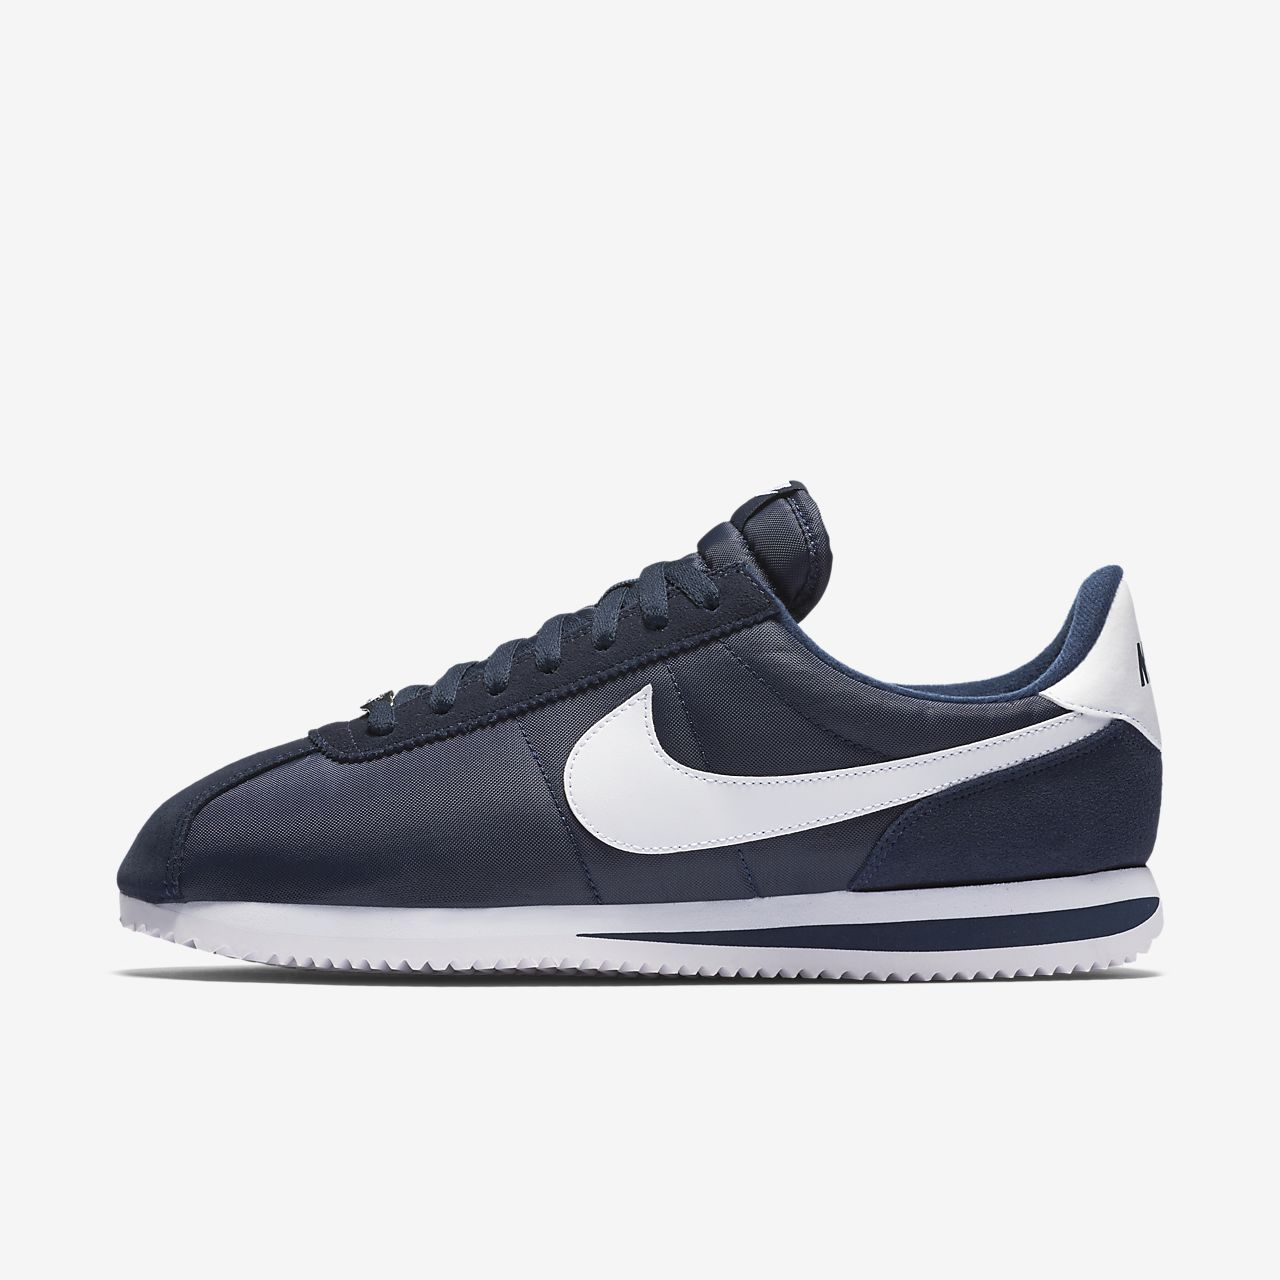 ... Nike Cortez Basic Nylon Men's Shoe